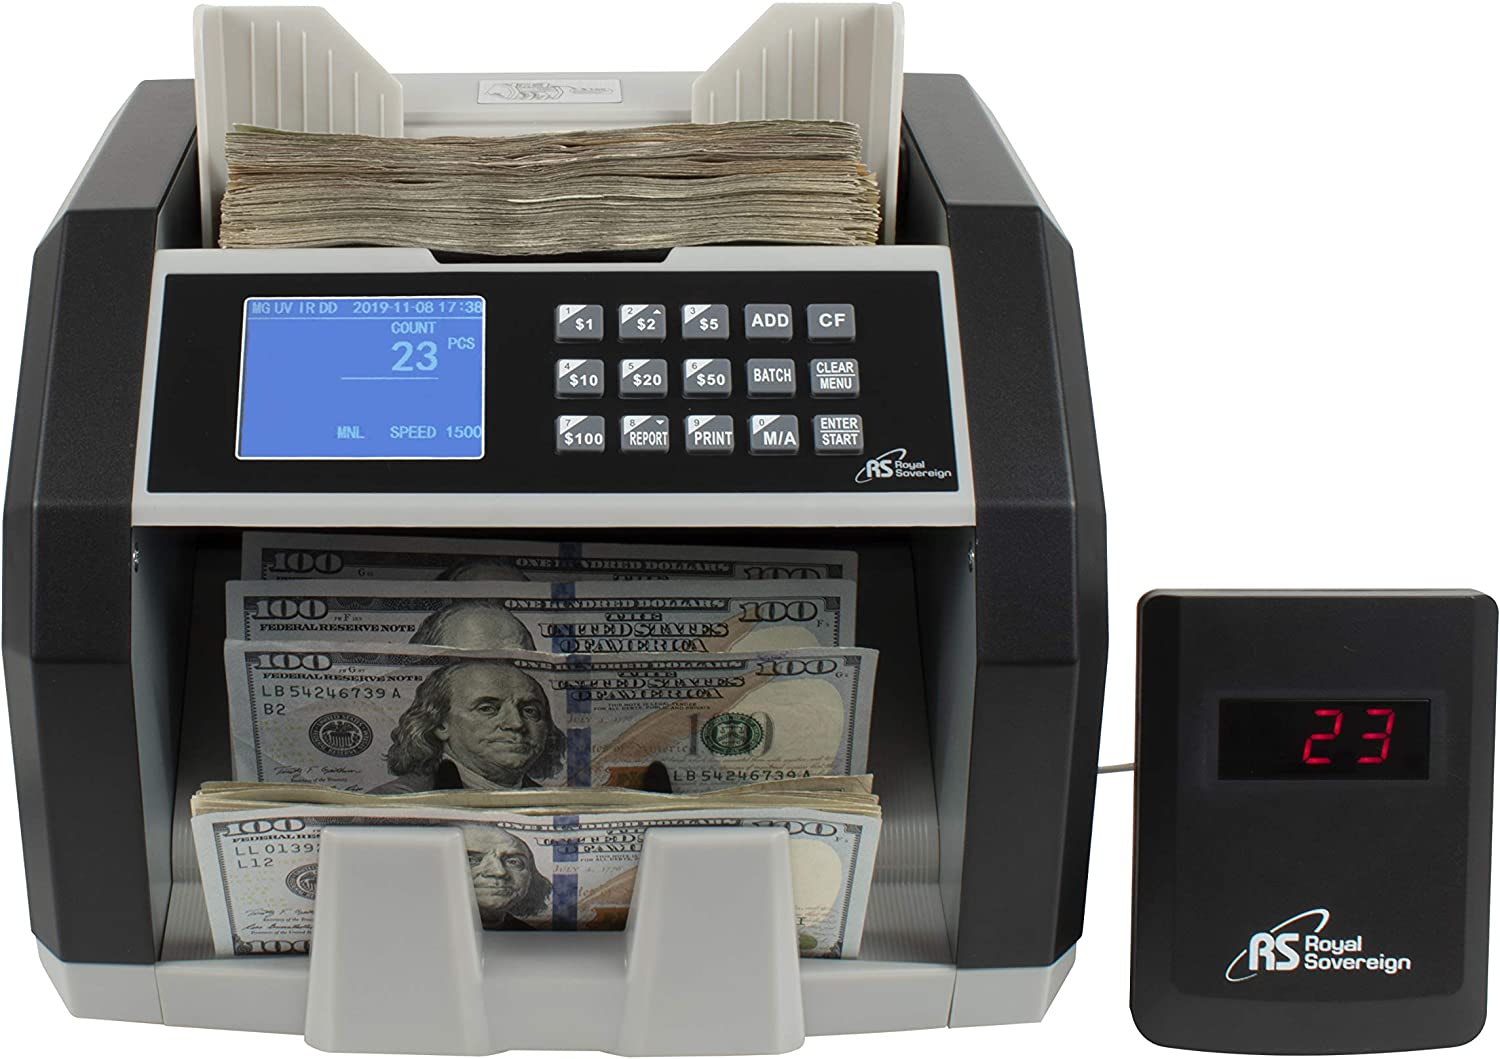 Royal Sovereign High Speed Money Counting Machine, with UV, MG, IR Counterfeit Bill Detector & Value Counting (RBC-ED250)